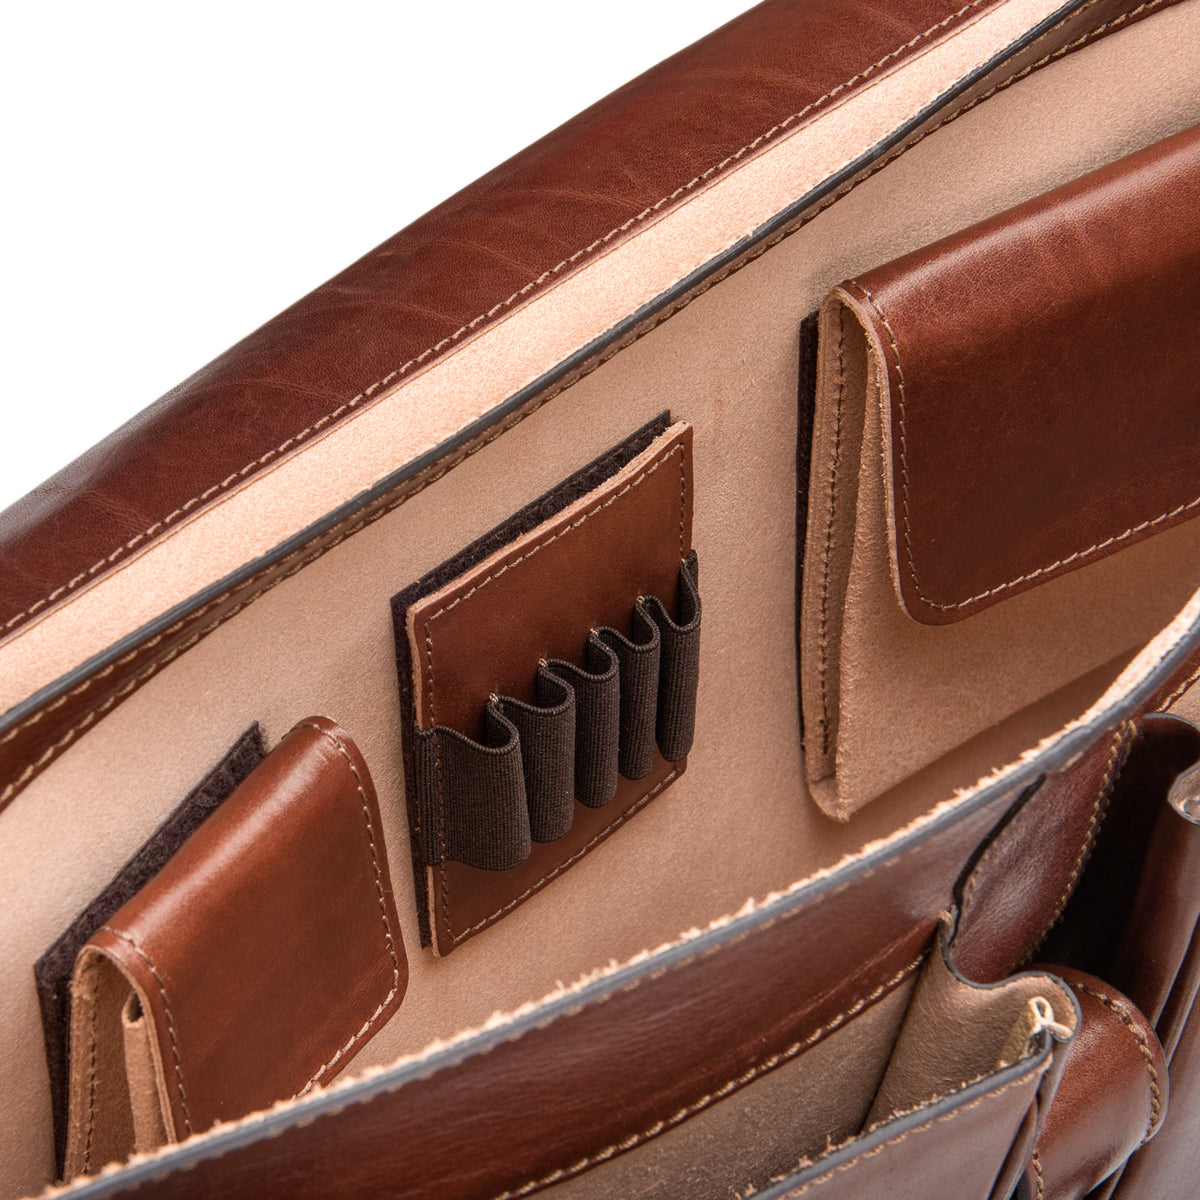 Image 5 of the 'Tomacelli' Handmade Chestnut Veg-Tanned Briefcase